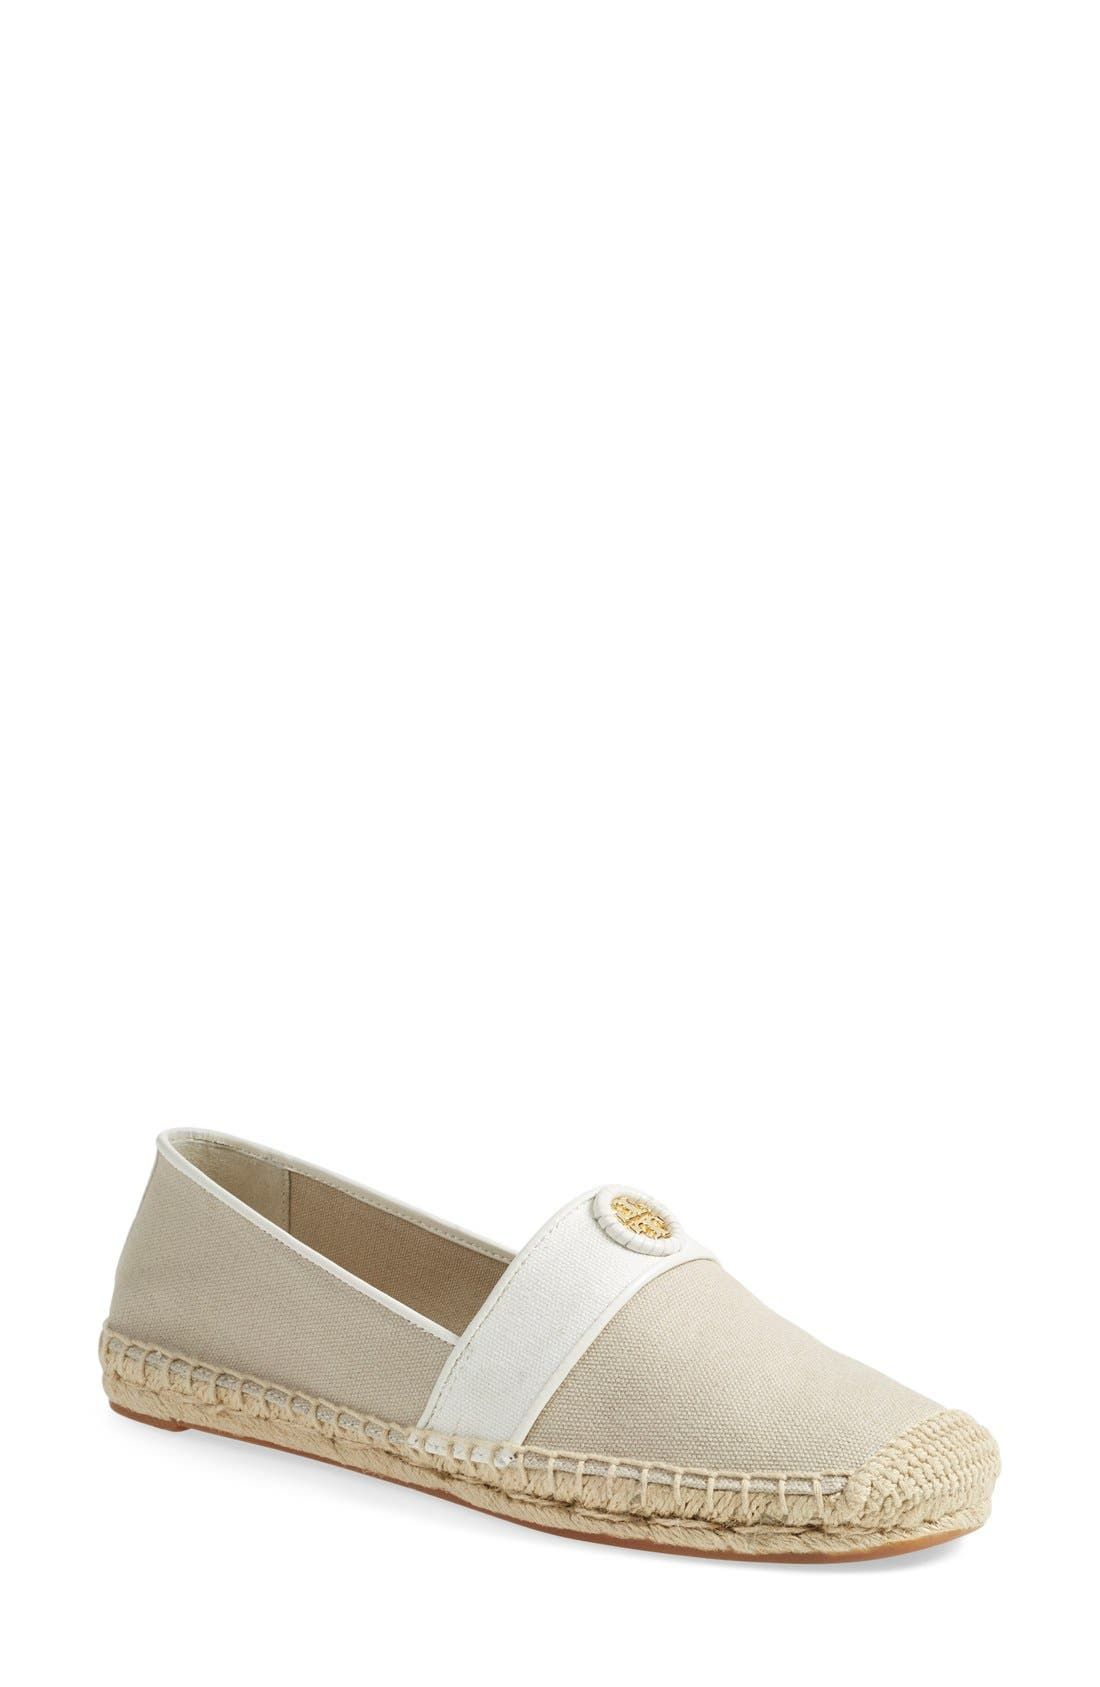 Alternate Image 1 Selected - Tory Burch 'Lacey' Espadrille Flat (Women) (Nordstrom Exclusive)